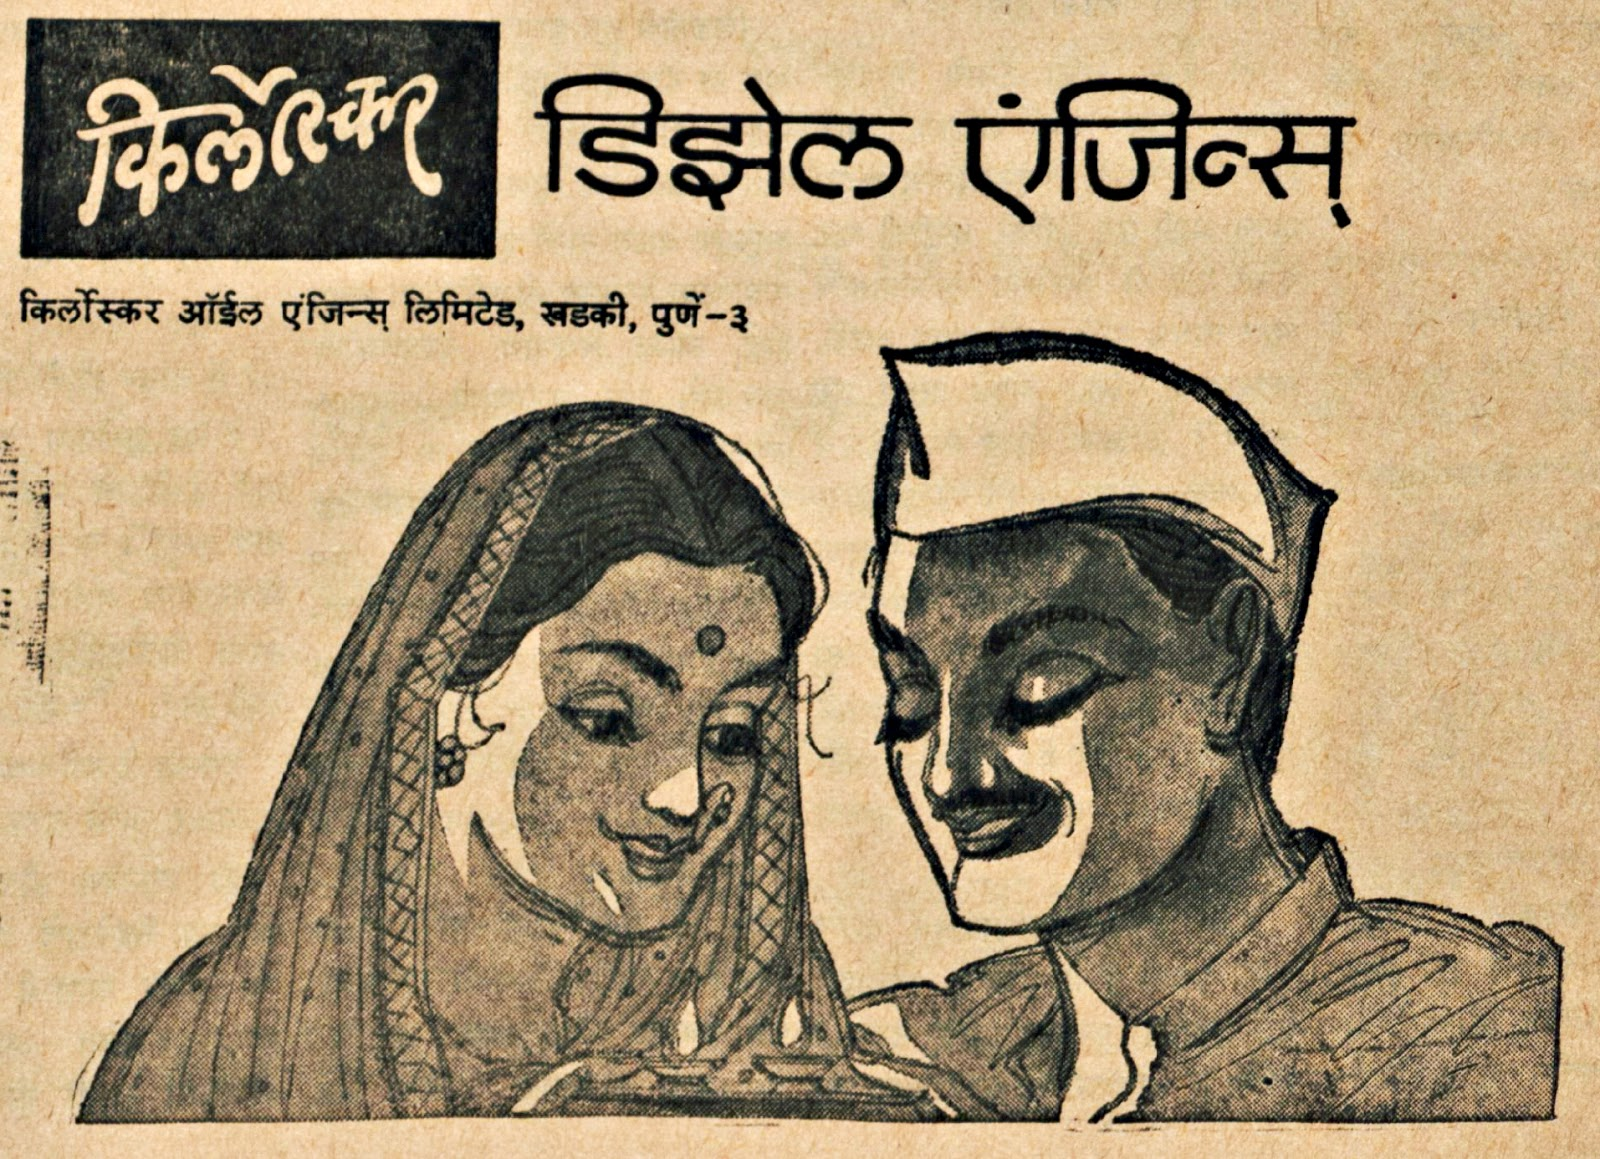 Vintage Newspaper Ads Vintage Indian Newspaper Ads